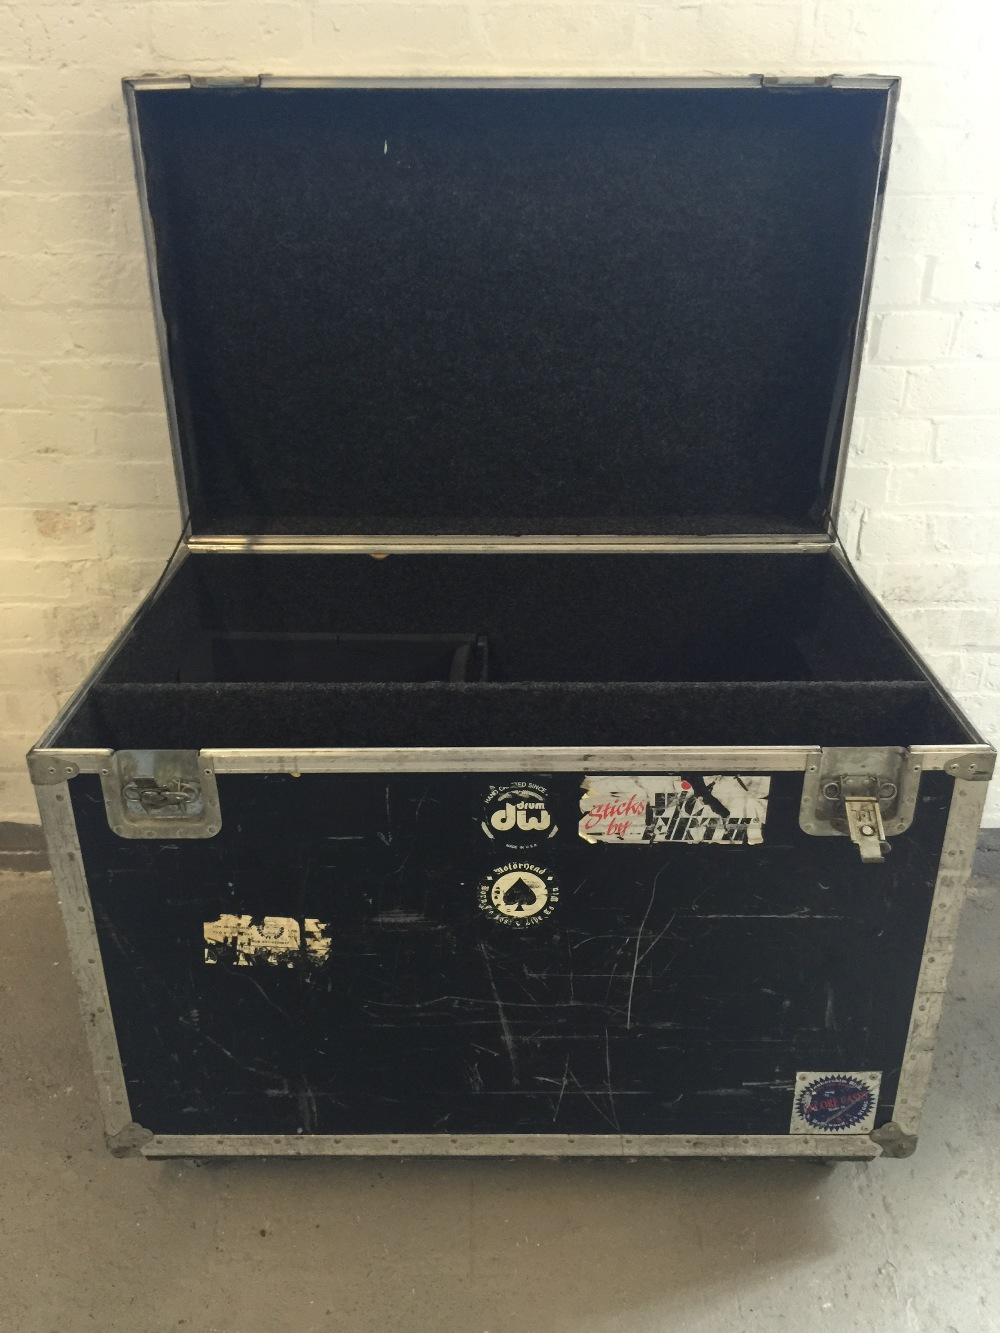 MOTORHEAD & PHILTHY ANIMAL - an Encore Cases flight cased used on Motorhead world tours from the - Image 2 of 4